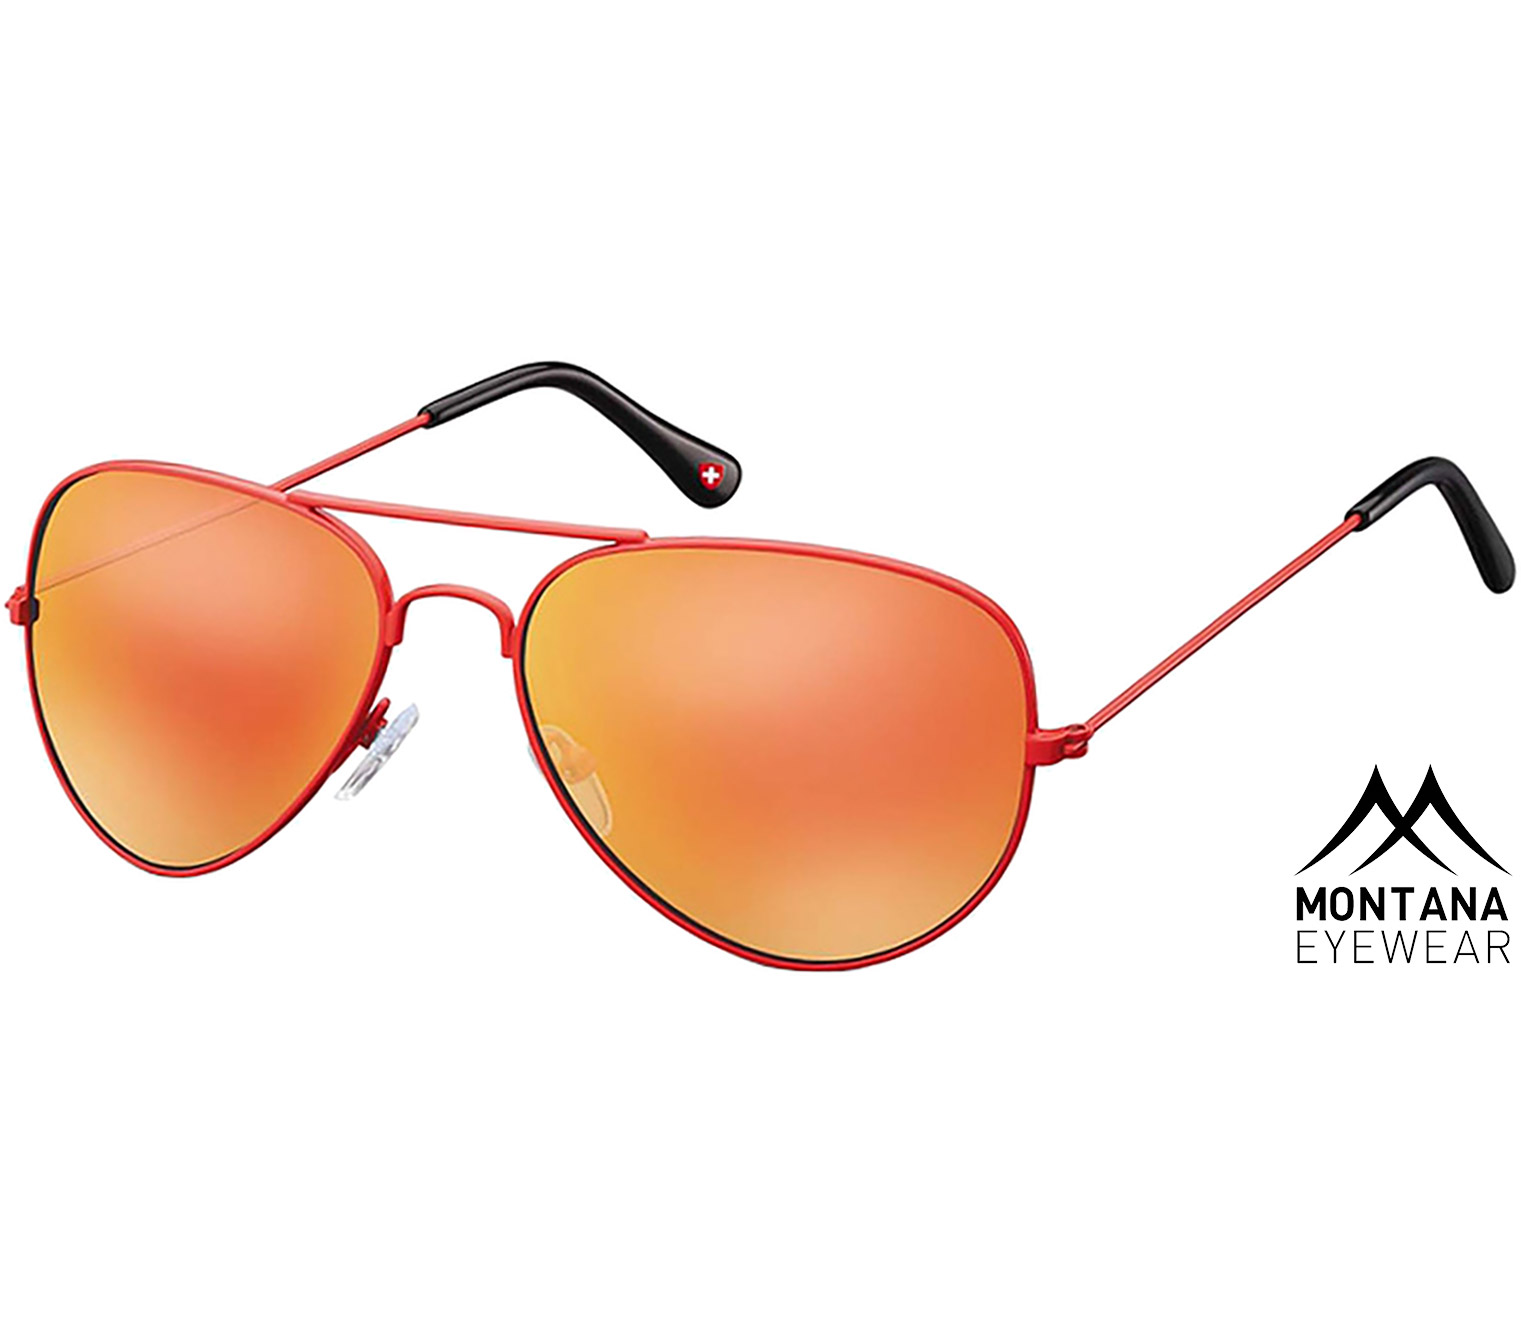 Main Image (Angle) - Island (Red) Sunglasses